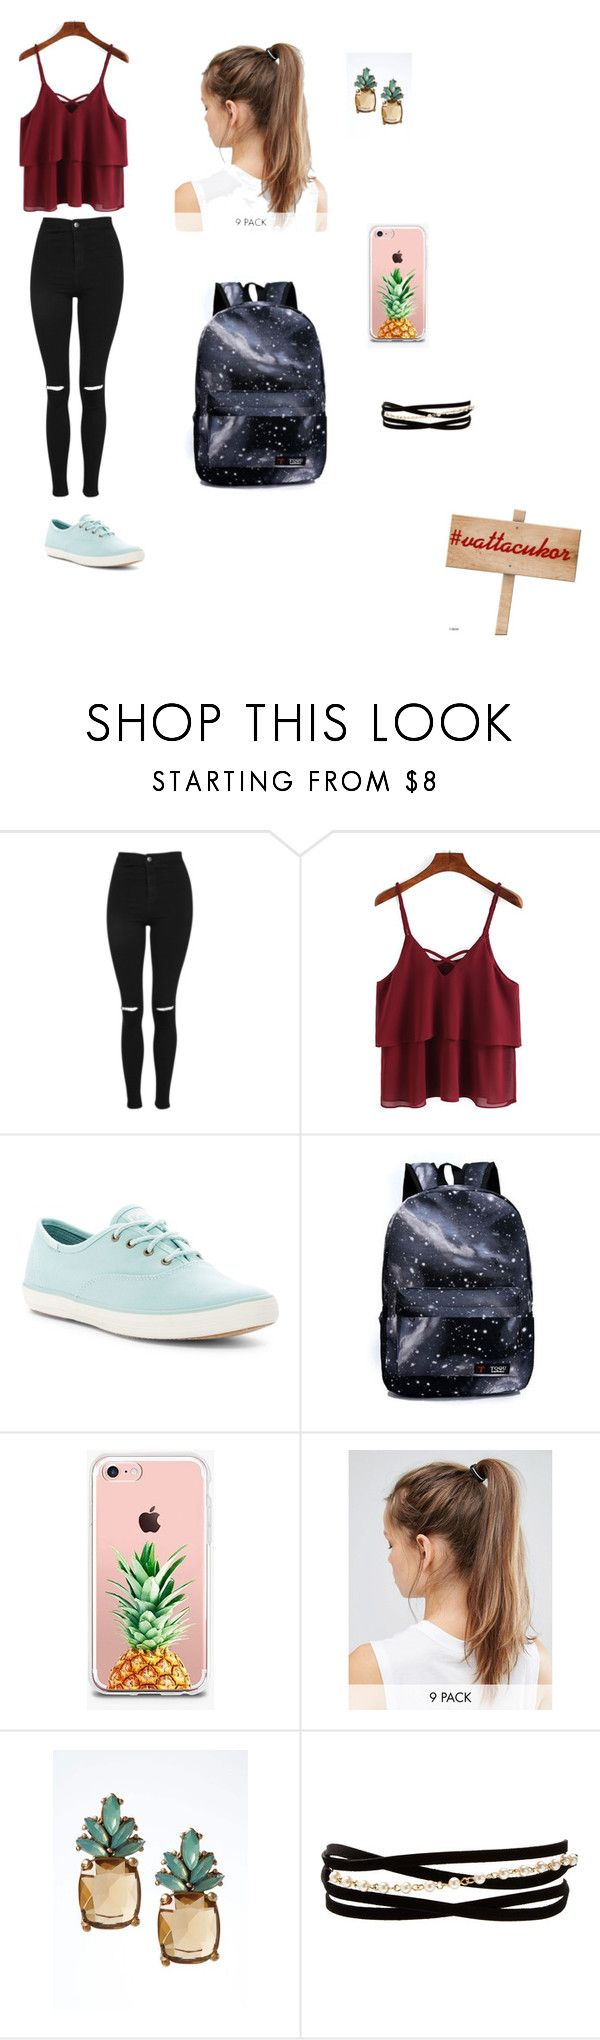 iskola kollekció by kalovics-dominika on Polyvore featuring Topshop, Keds, Banana Republic, Kenneth Jay Lane, NIKE and The Casery